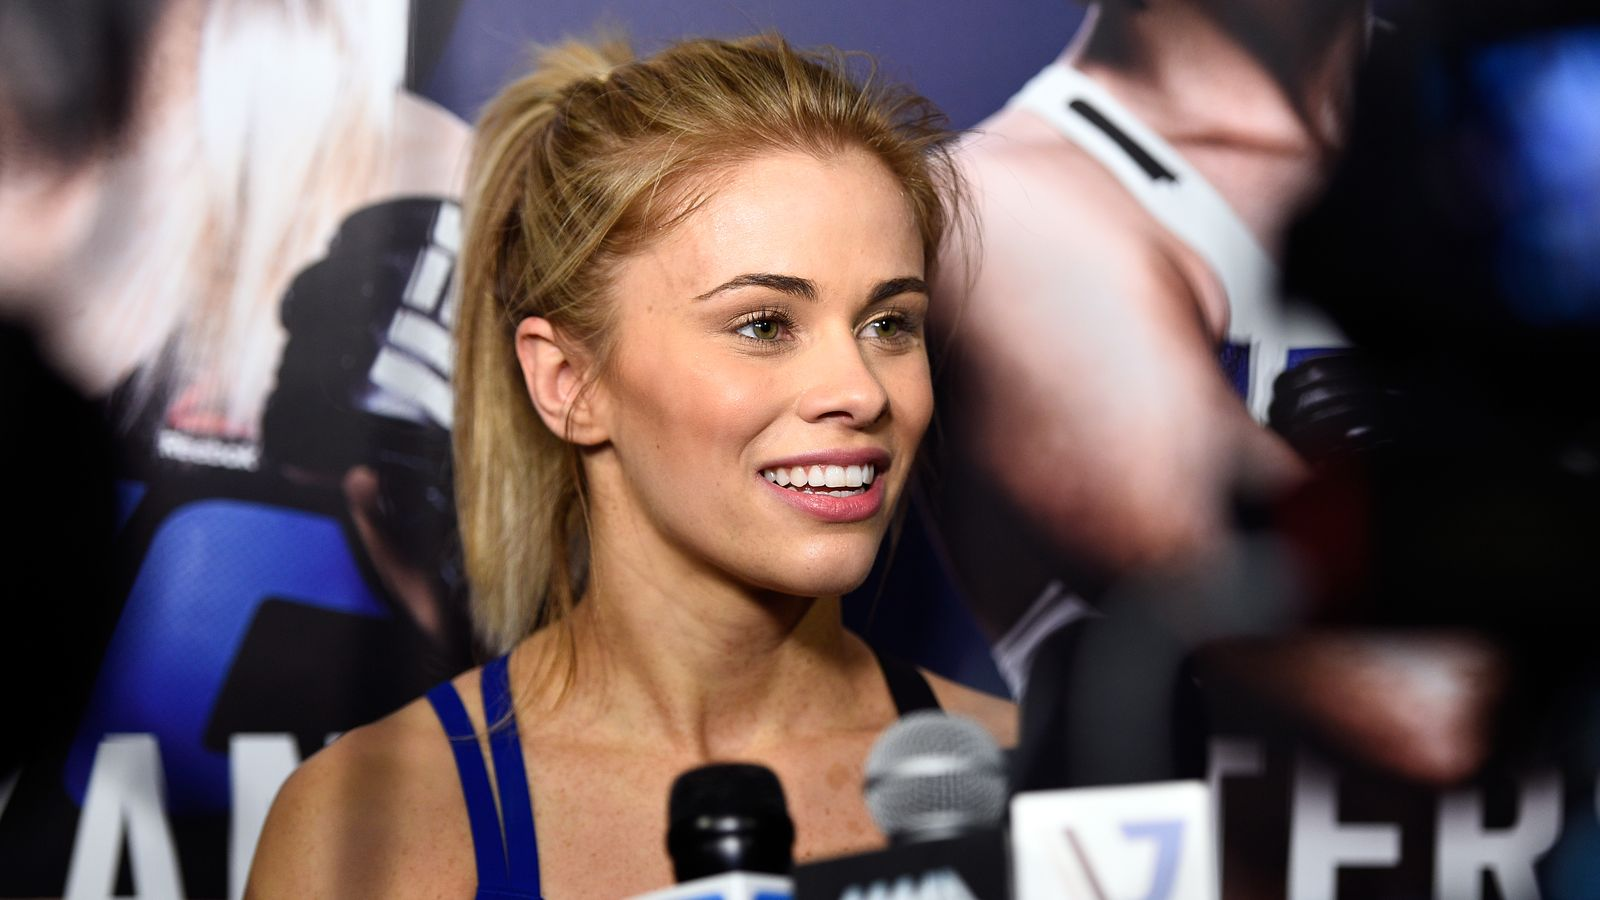 SACRAMENTO, CA - DECEMBER 15:  Paige VanZant interacts with media after an open training session for fans and media at the Golden 1 Center on December 15, 2016 in Sacramento, California. (Photo by Jeff Bottari/Zuffa LLC/Zuffa LLC via Getty Images)